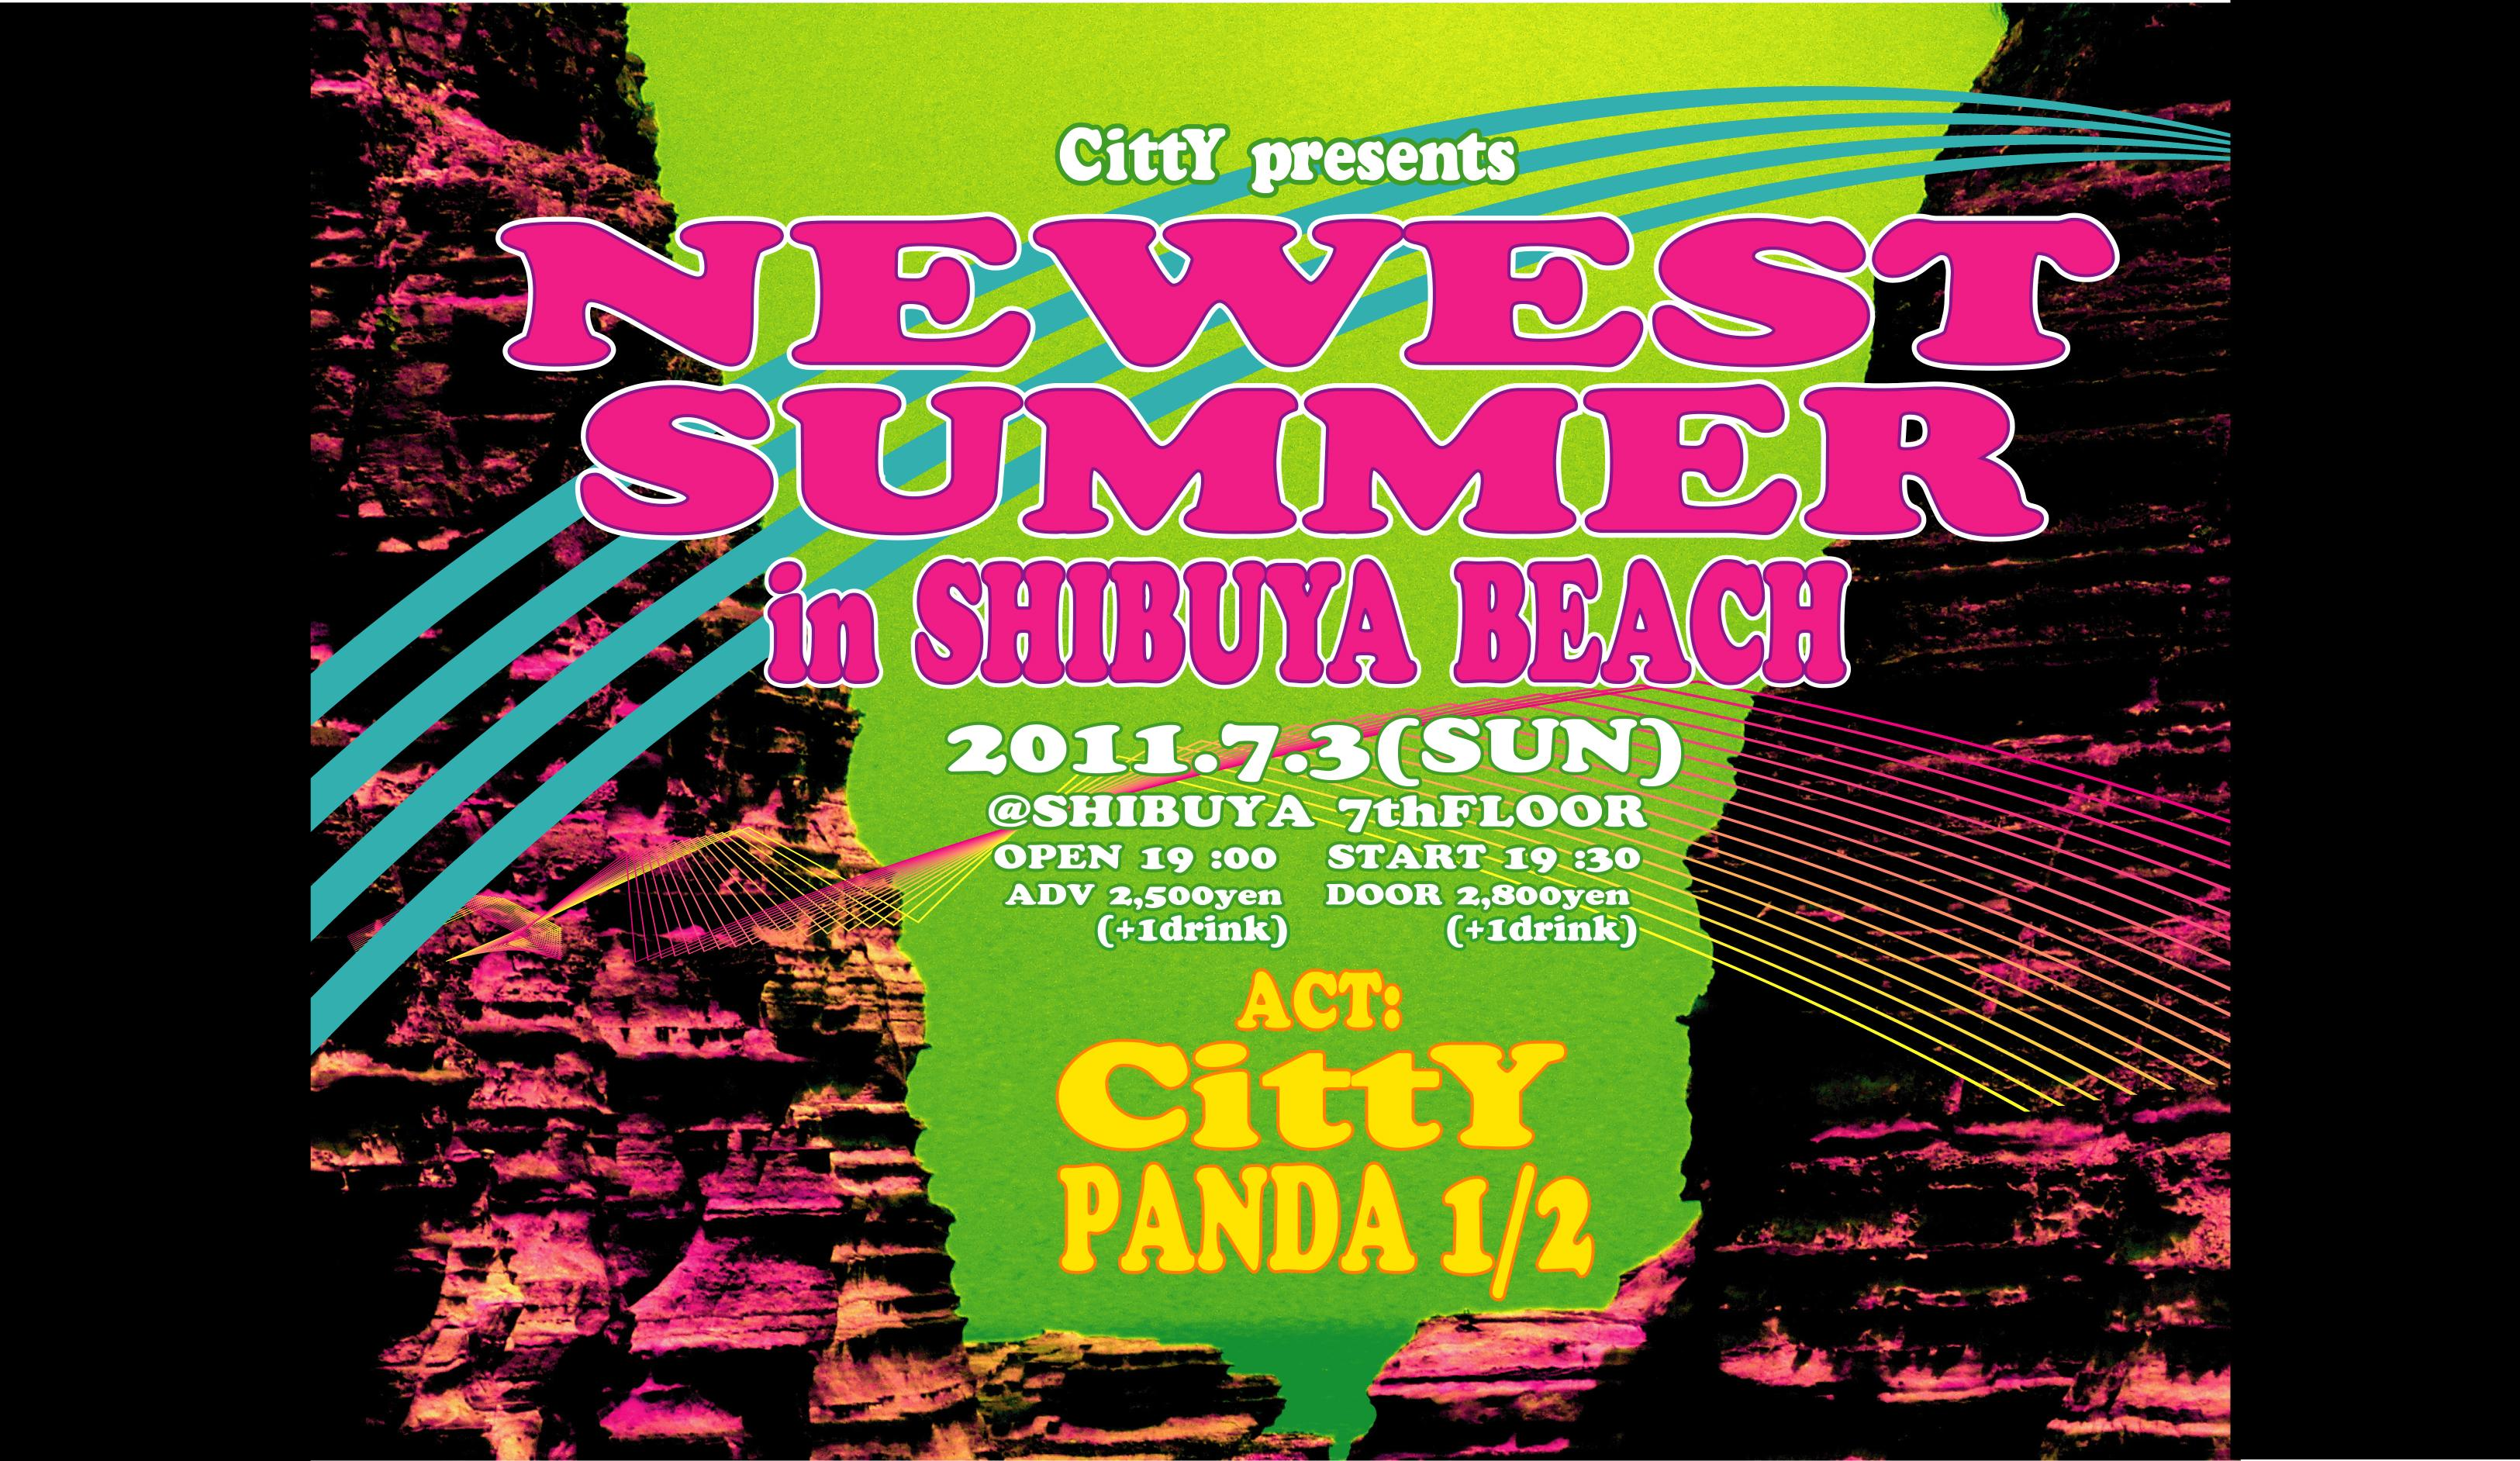 "CittY presents""NEWEST SUMMER in SHIBUYA BEACH"" @渋谷7thFLOOR"